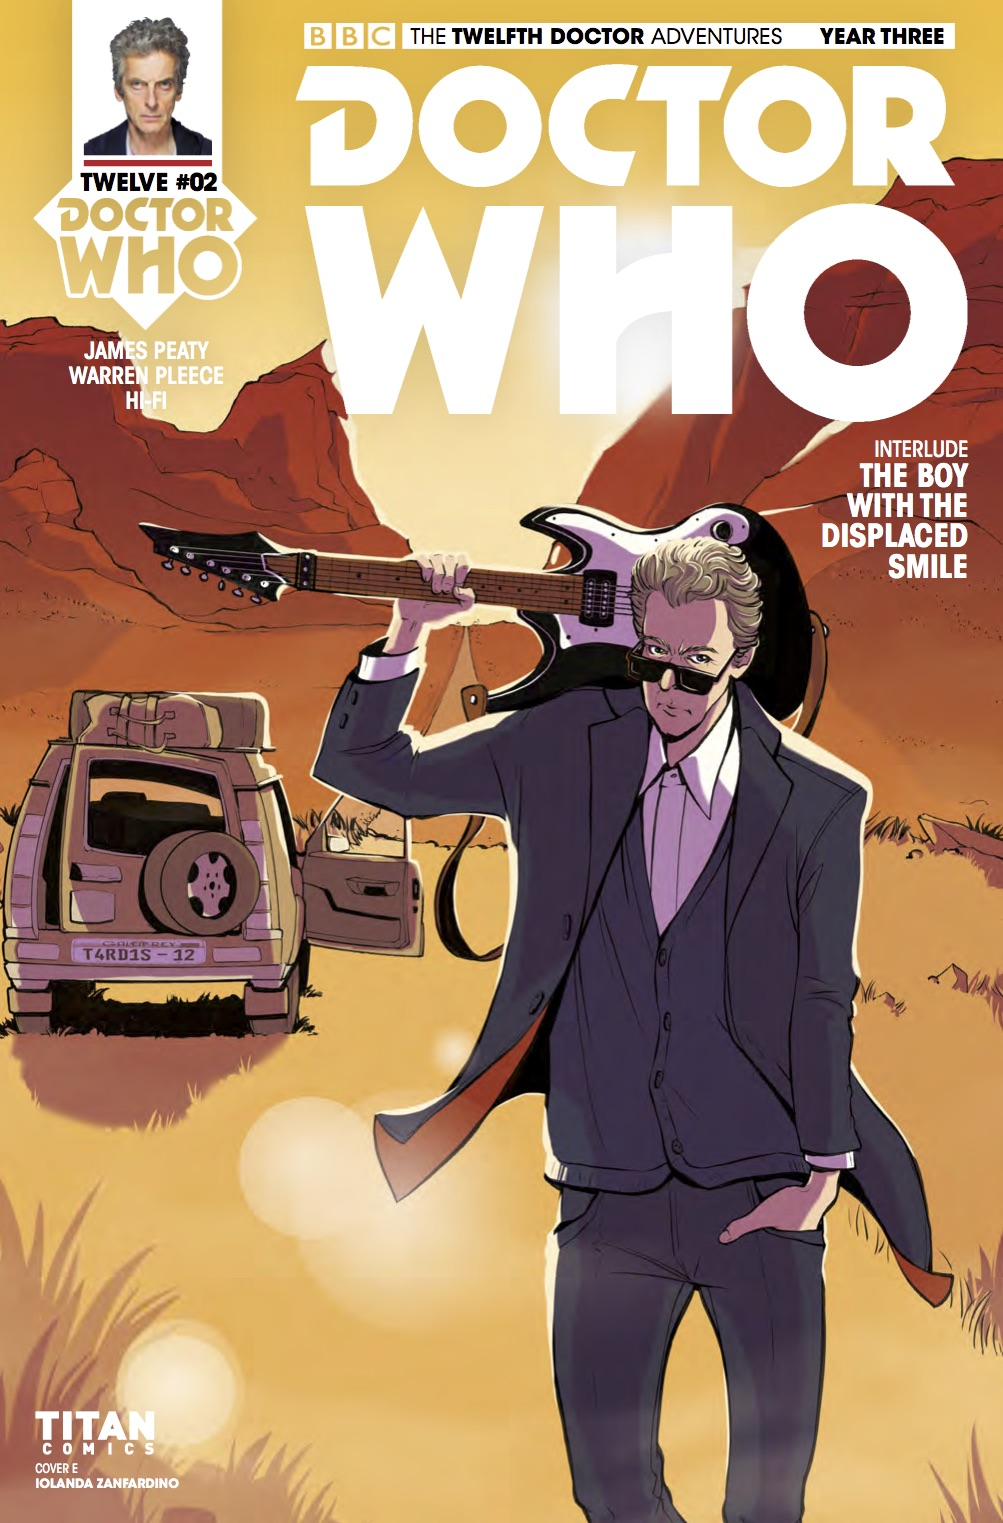 TWELFTH DOCTOR YEAR 3 #2 Cover E (Credit: Titan)